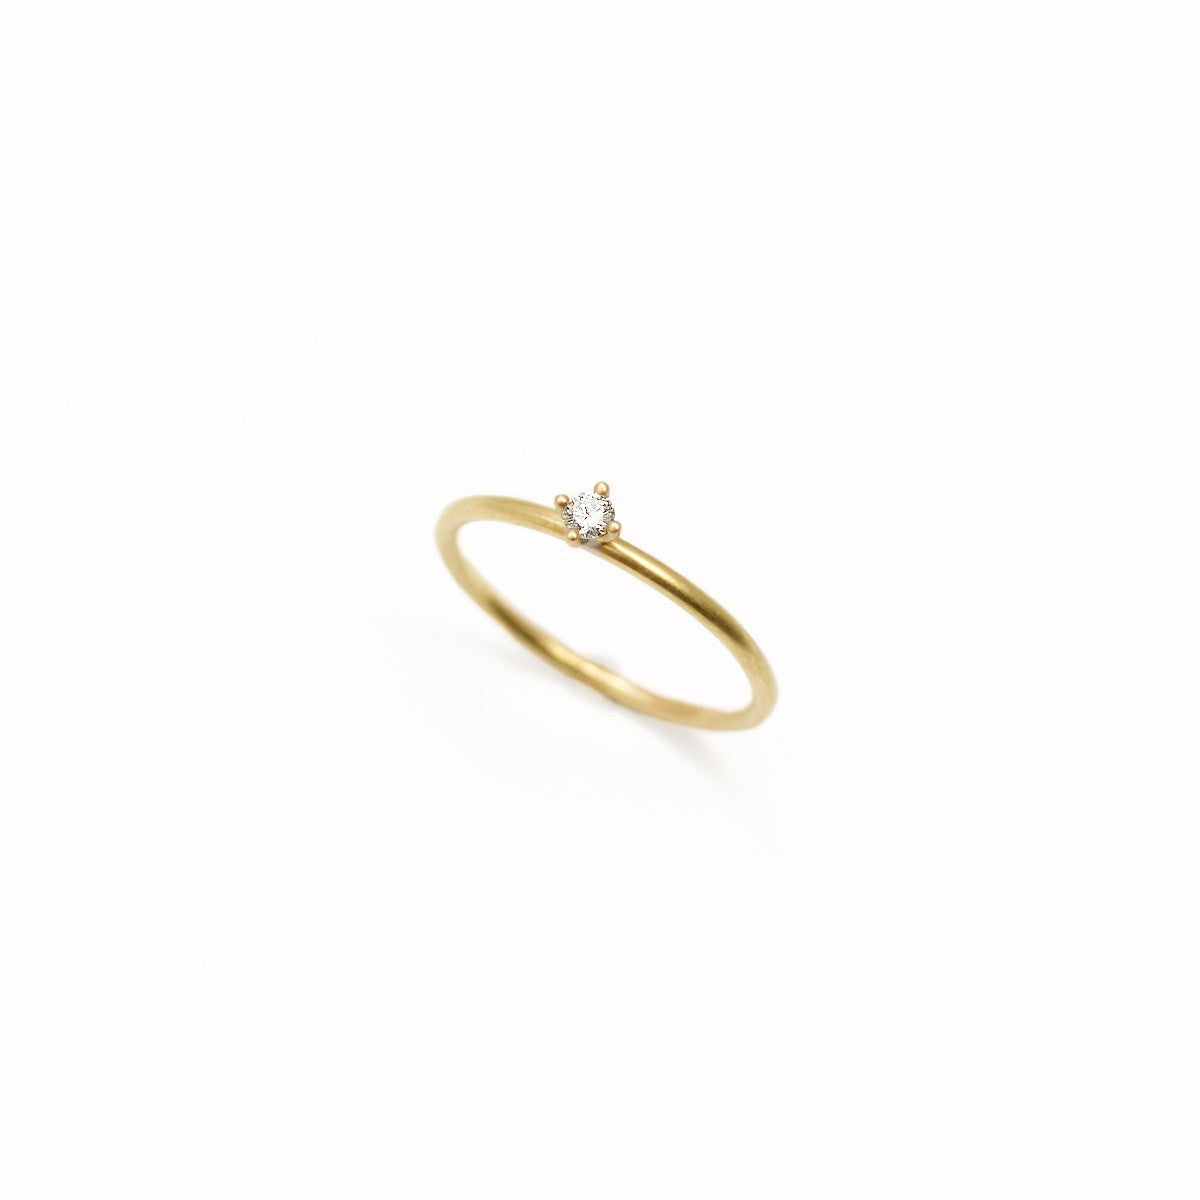 'Sakura 0,05 ct' Fairtrade Gold Diamond Ring